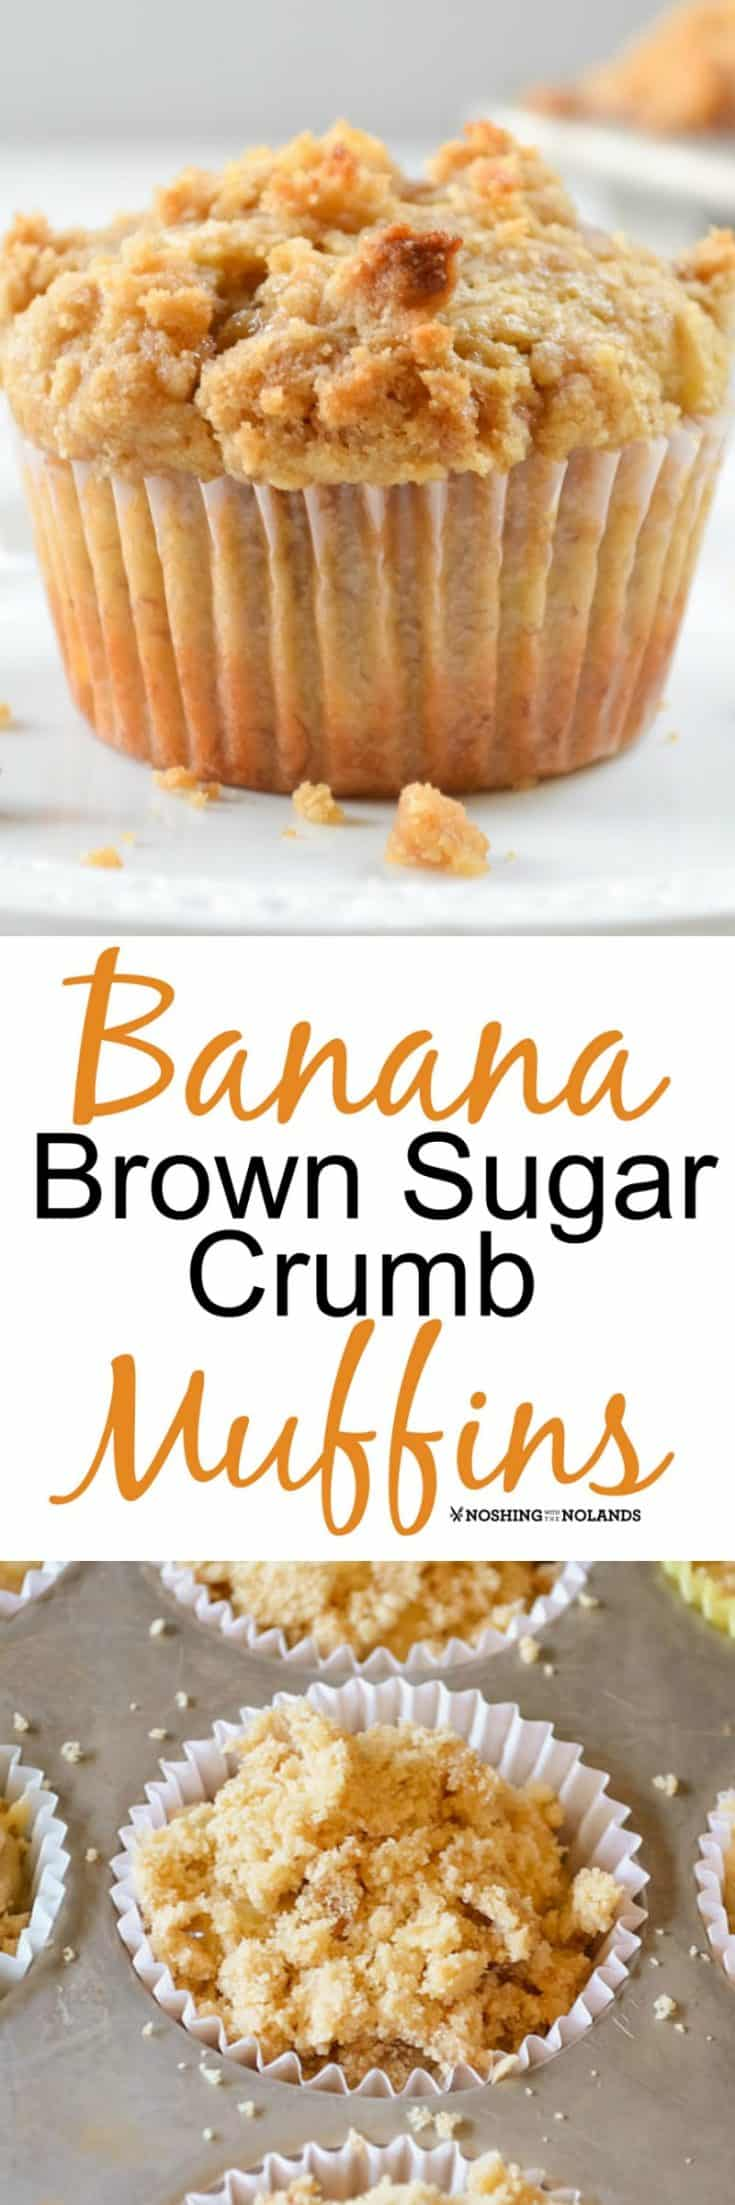 Banana Brown Sugar Crumb Muffins are simply the best muffins around. Crunchy sweet topping with a tender, moist inside. #banana #muffins #brownsugarcrumb